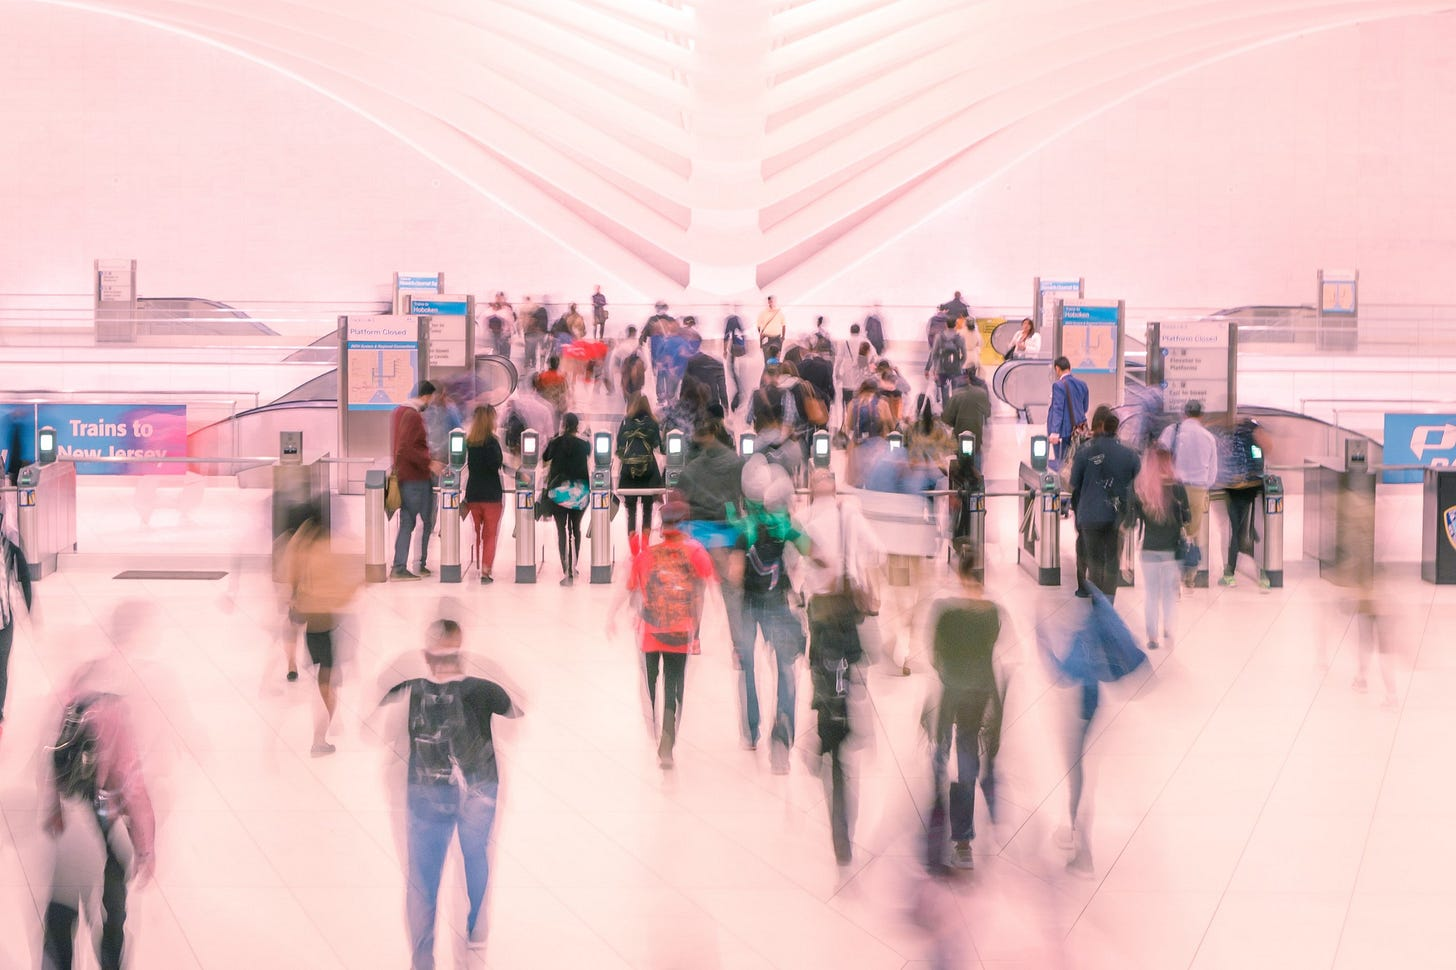 Blurred image of people in a mall for article by Larry G. Maguire